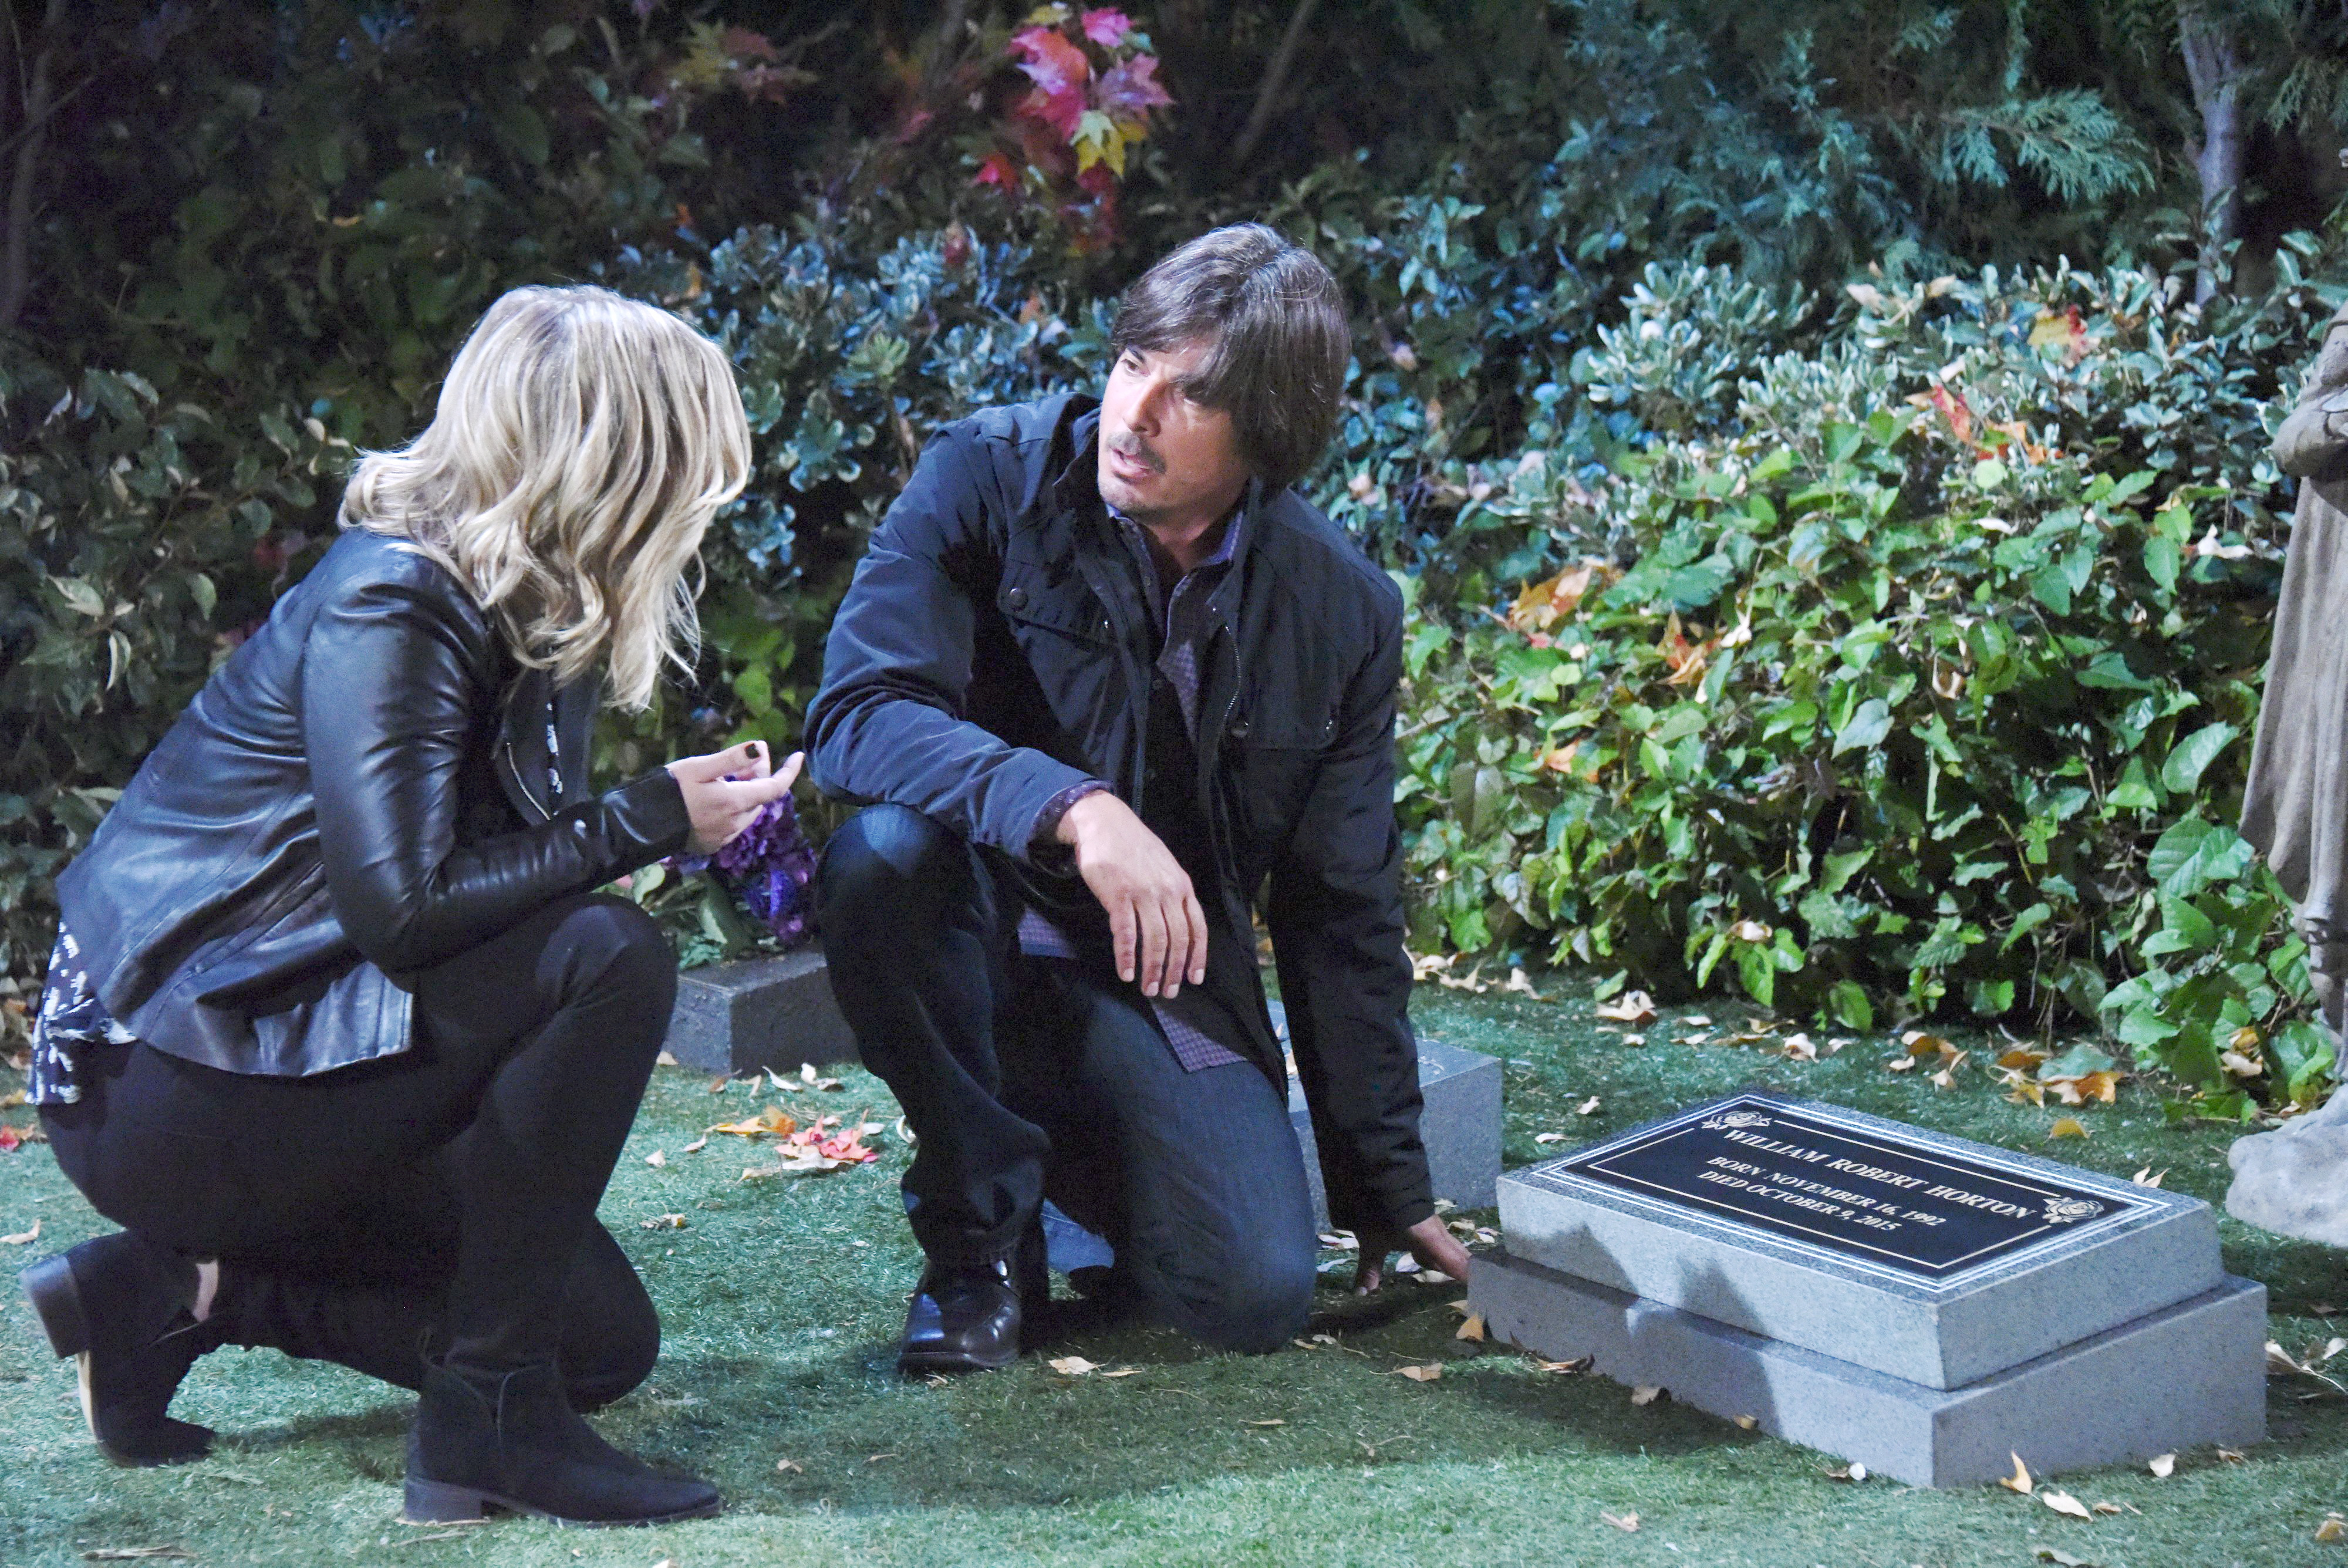 Days Of Our Lives Spoilers: Lucas is stunned to see Will and realizes his son is truly alive.